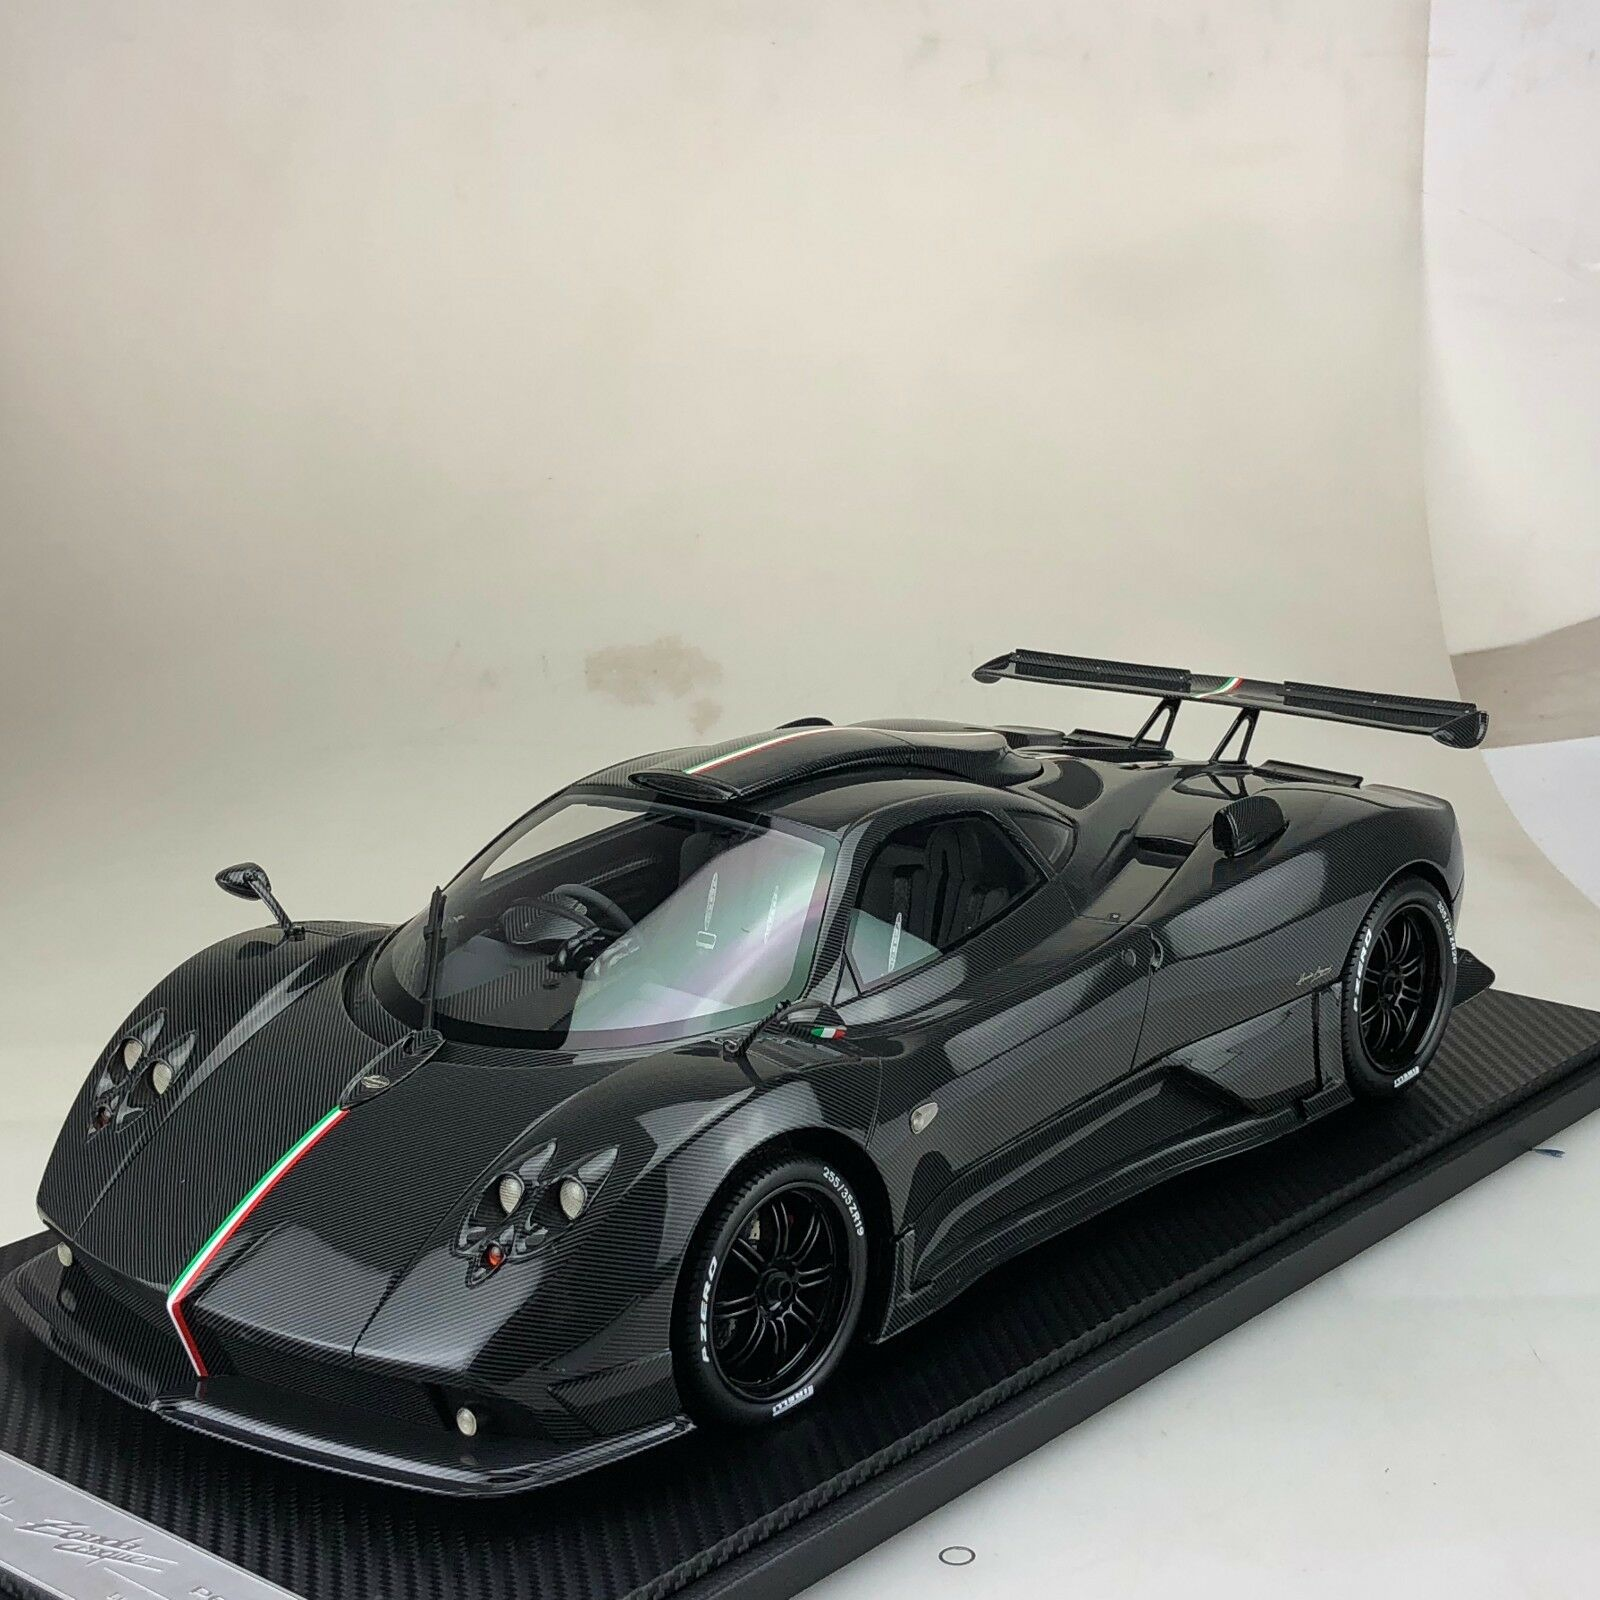 Échelle 1 12 peako PAGANI ZONDA Absolute Full Carbone RHD Ltd 20 pcs